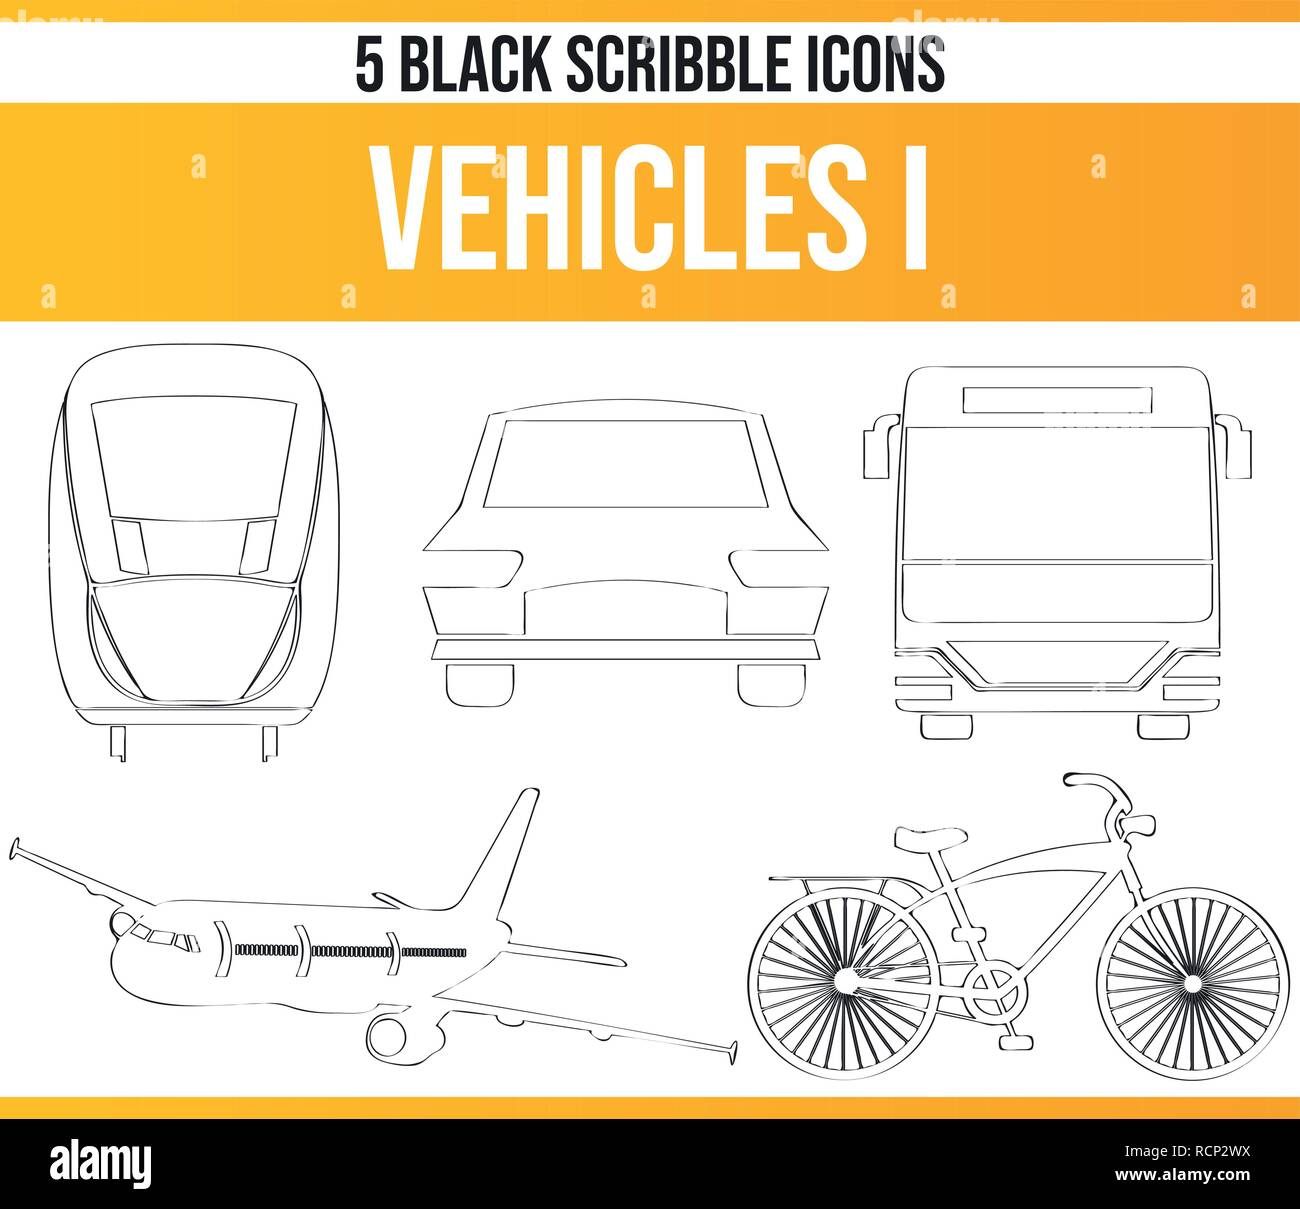 Black pictograms / icons on vehicles. This icon set is perfect for creative people and designers who need the theme of traveling in their graphic desi - Stock Vector